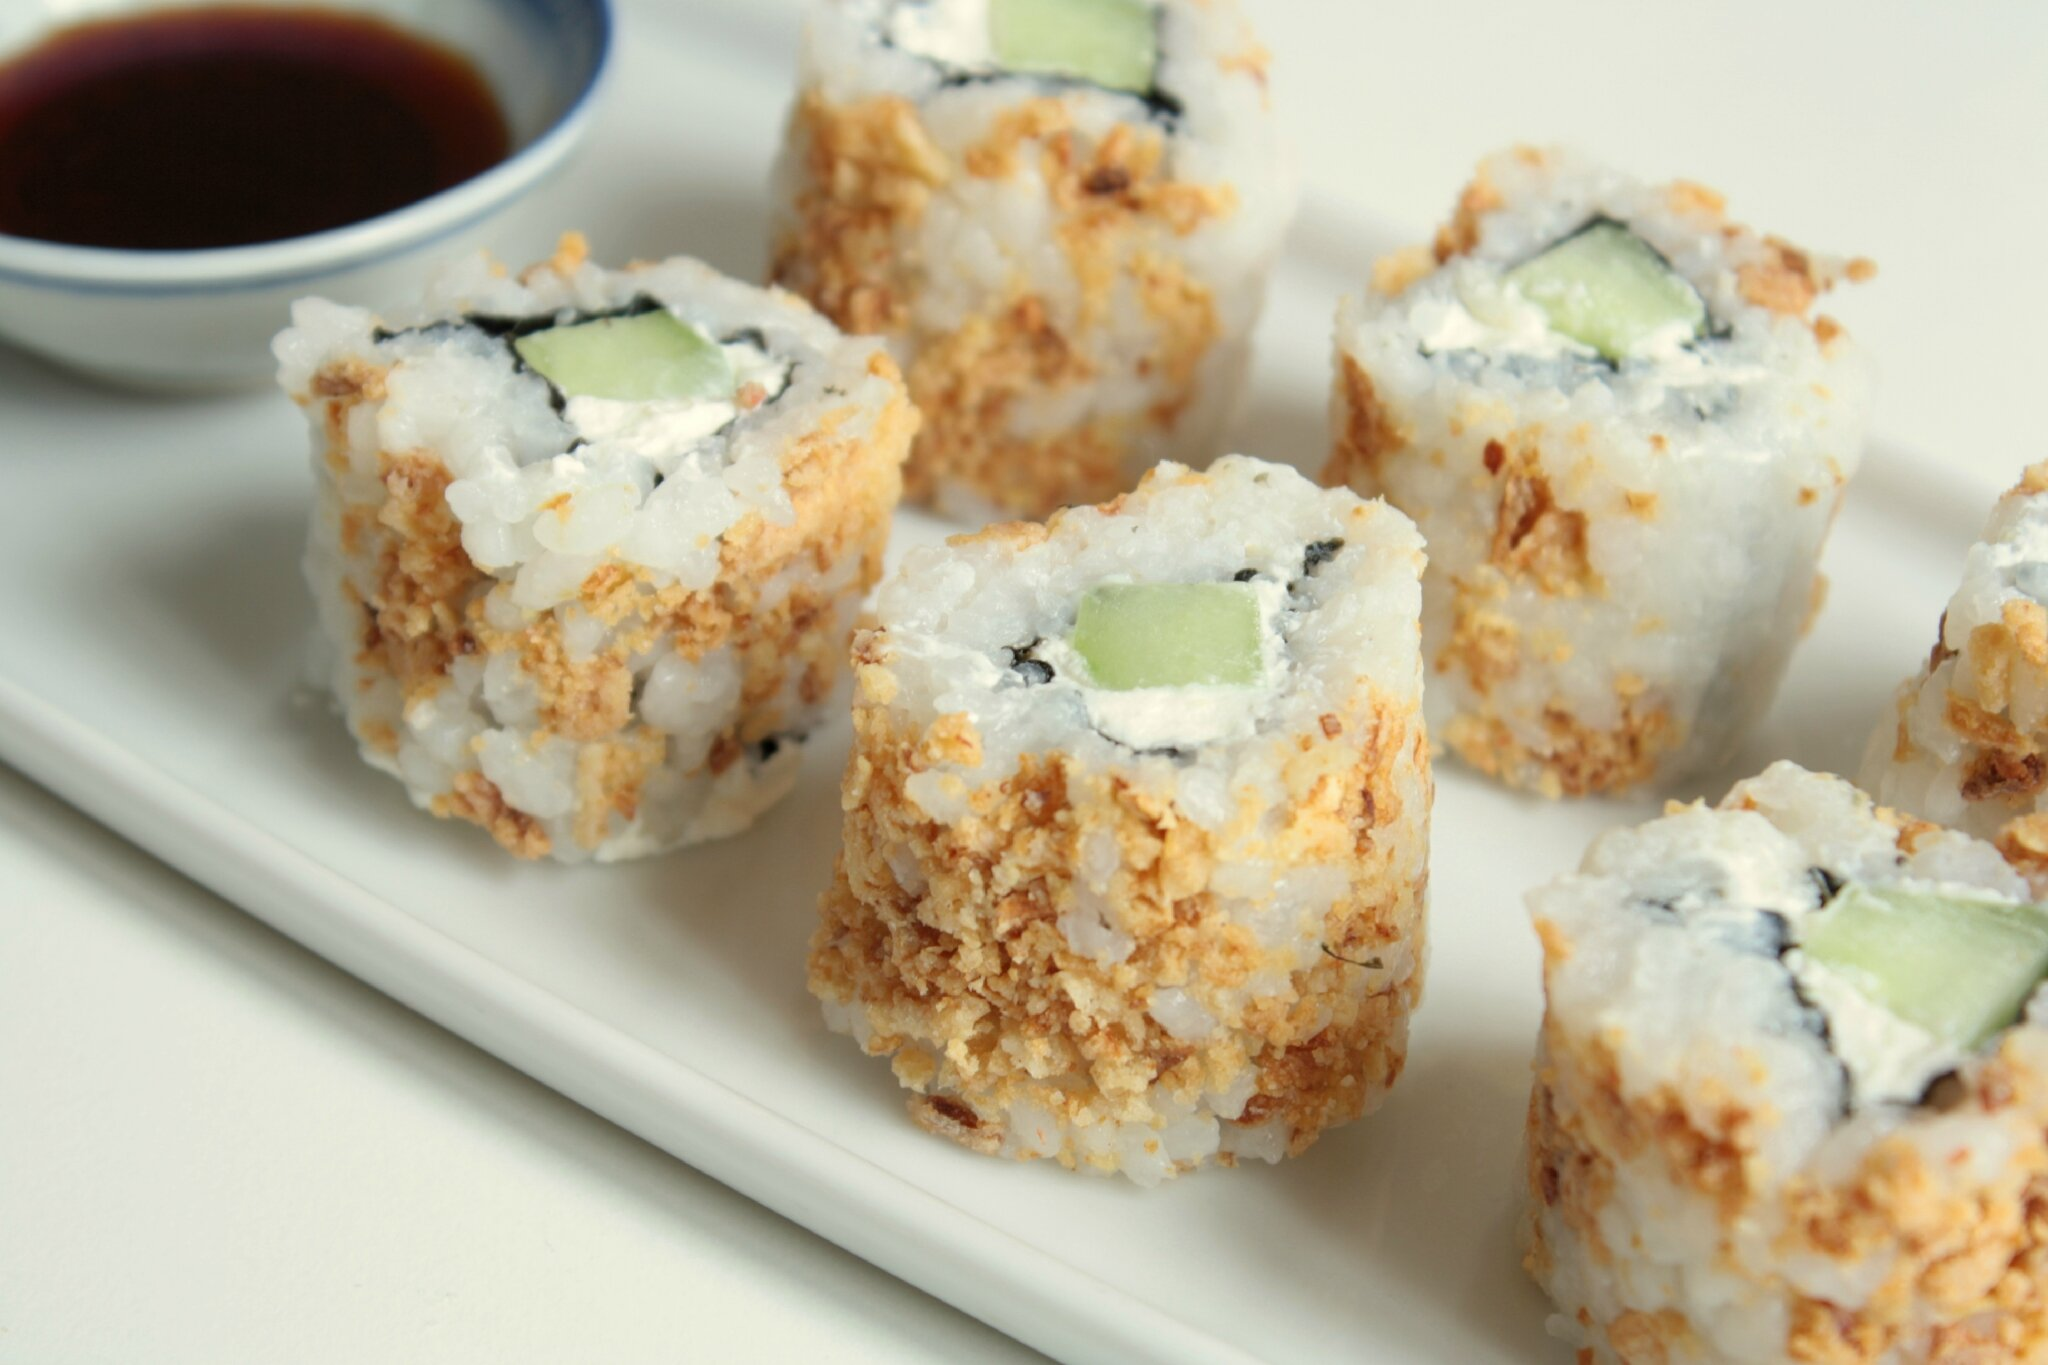 Apero Japonais Recette California Makis Croustillants Au Concombre And Fromage